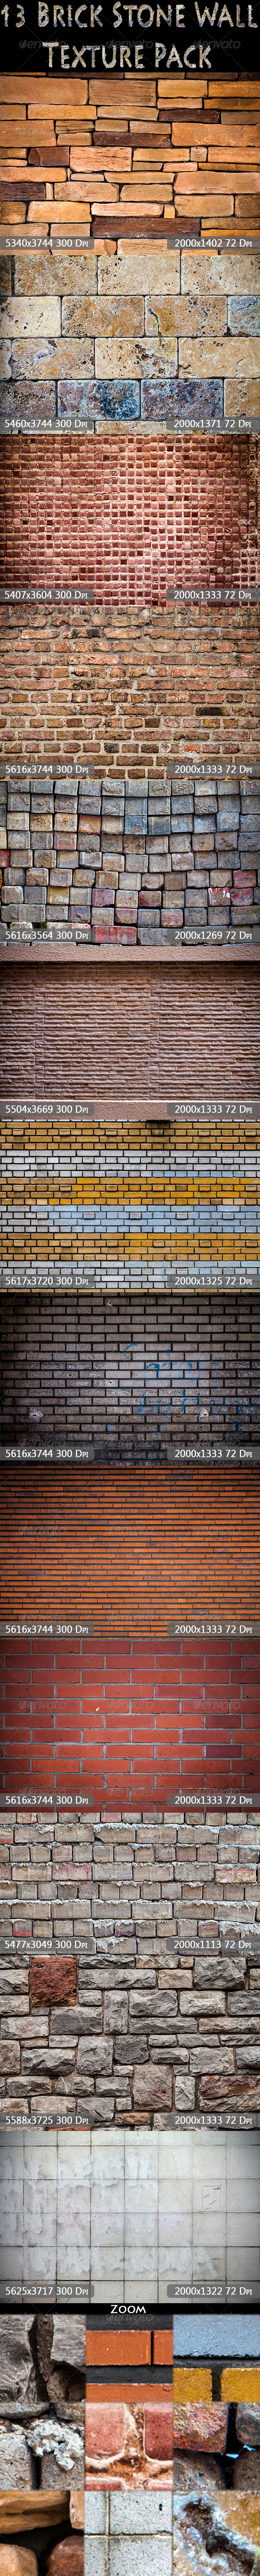 GraphicRiver 13 Brick Stone Wall Textrue Pack 7577801